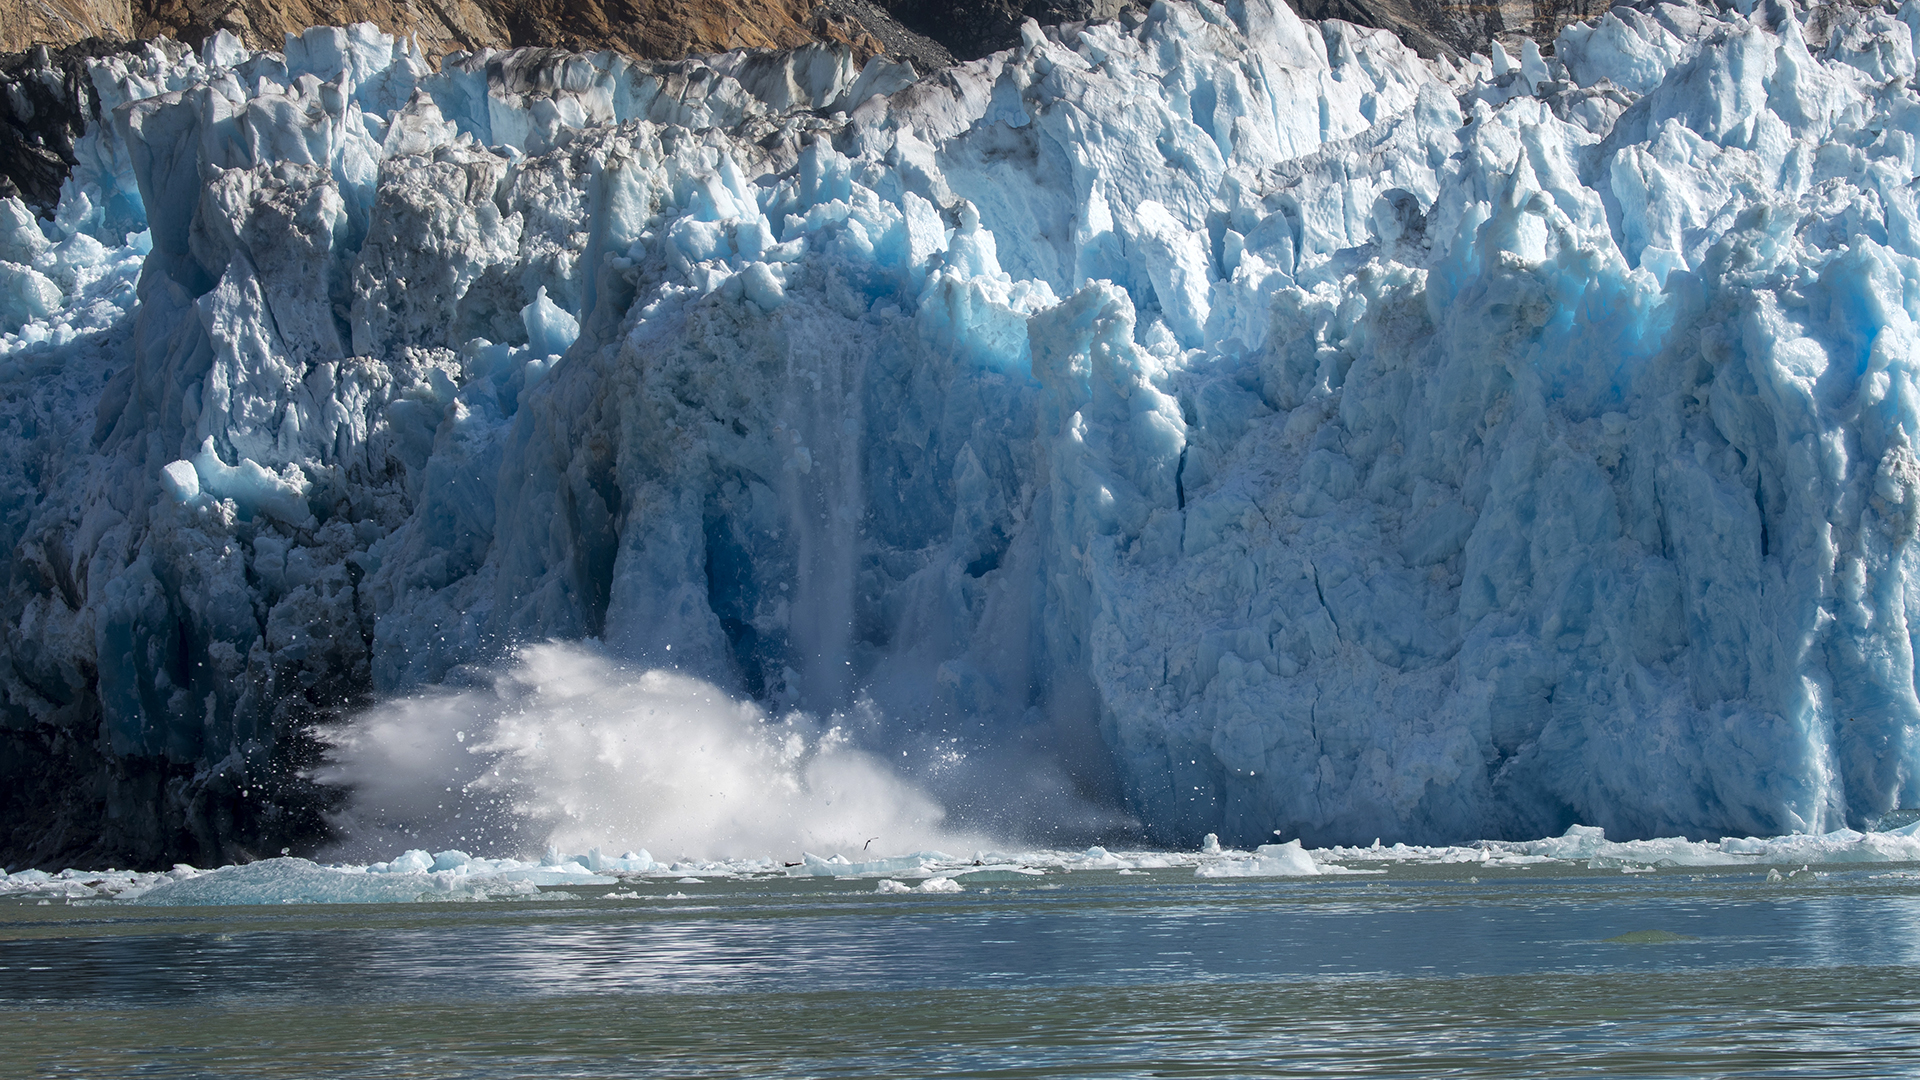 Chunks of ice are calving from the glacier face of the South